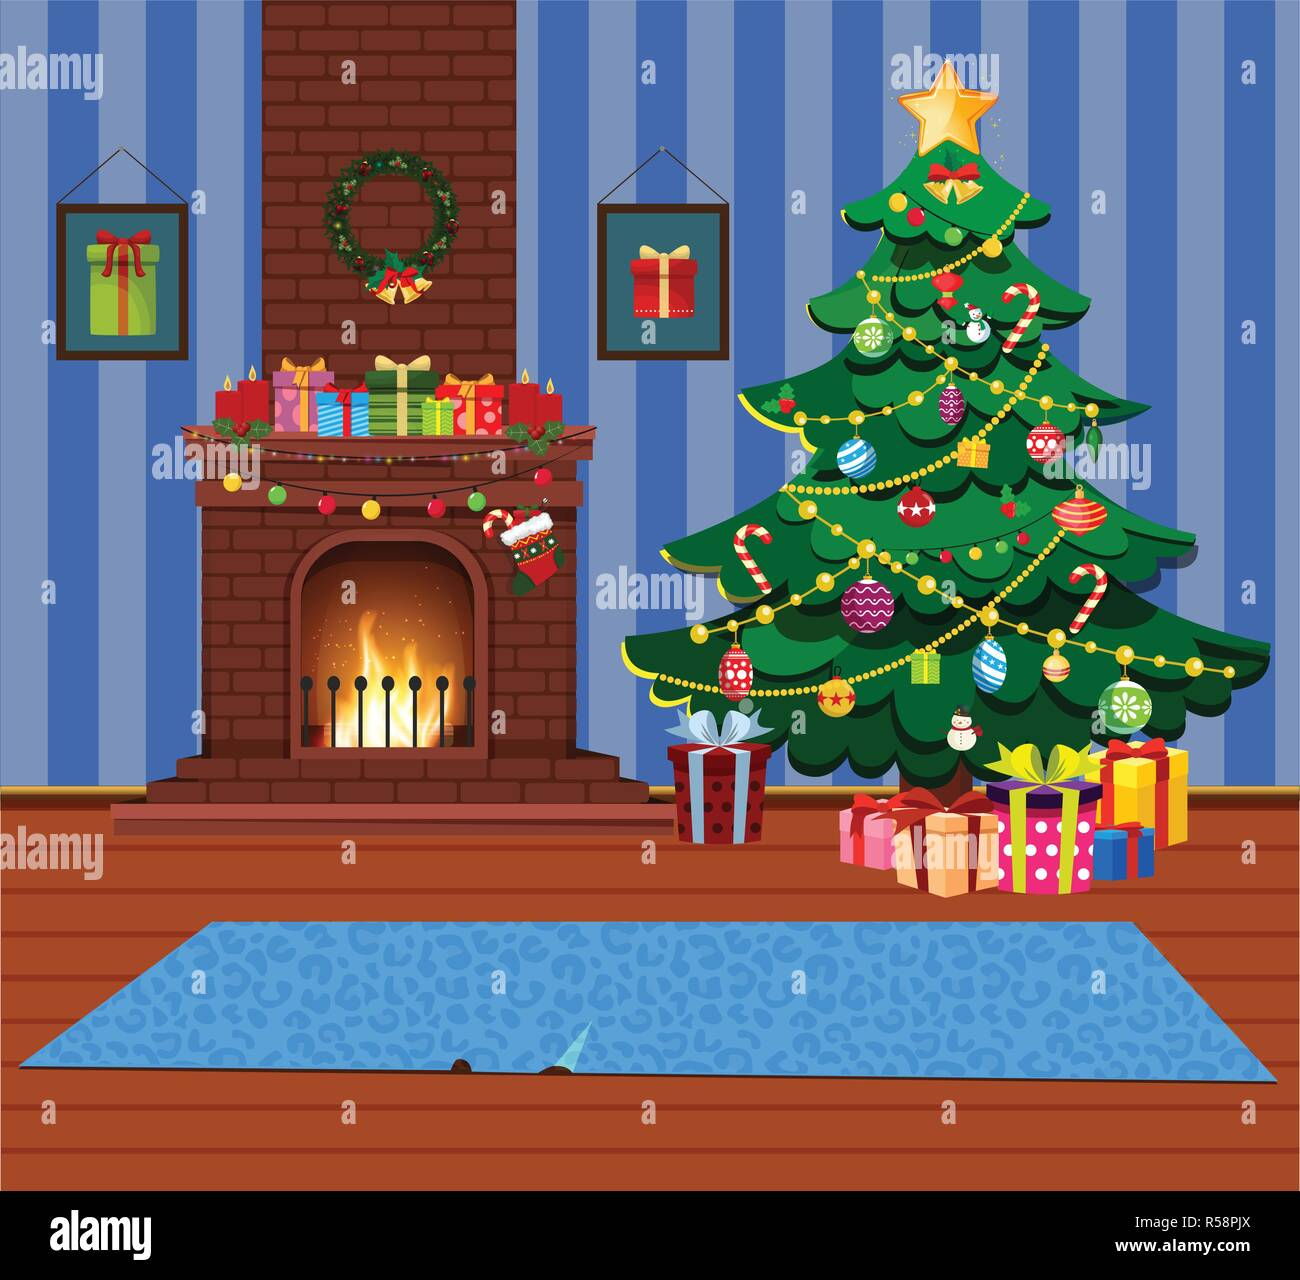 Cartoon home indor cozy comfort interior of decorated room with burning fire place and fir xmas tree with many gifts and presents. Vector christmas or - Stock Vector